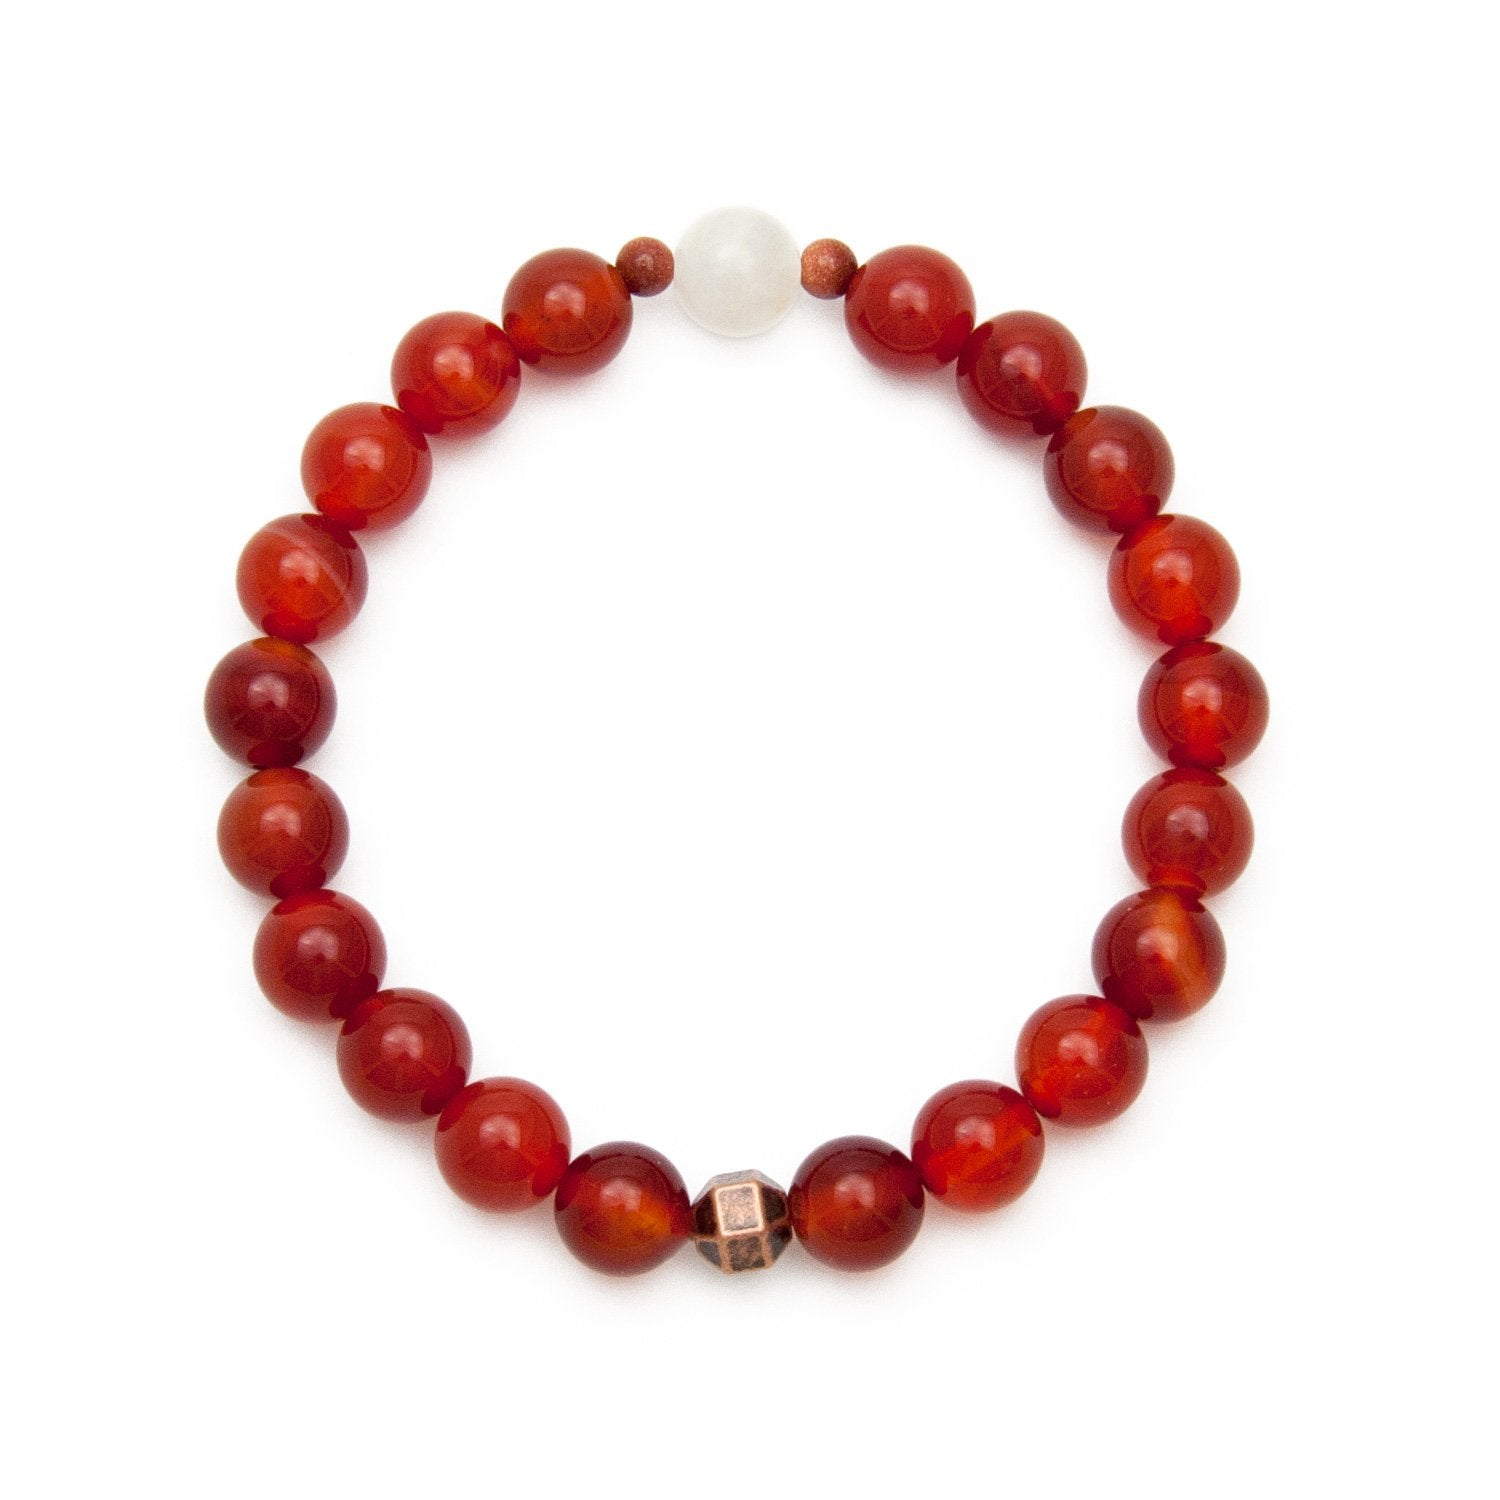 Carnelian & Moonstone Bracelet by Golden Lotus Mala